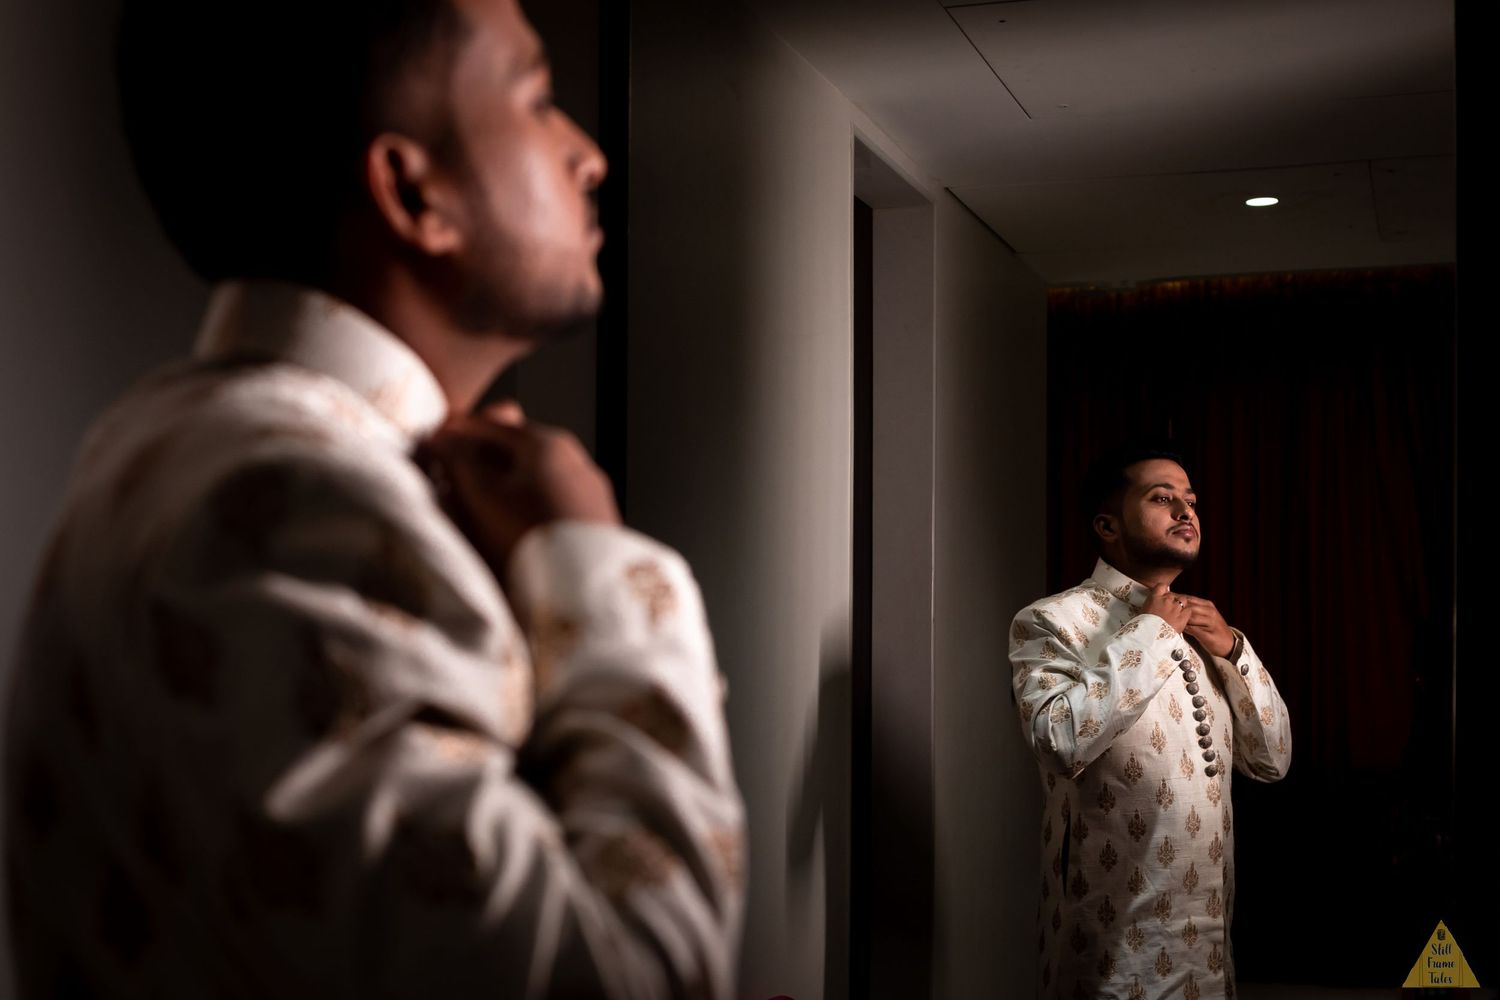 Groom adjusting his wedding dress with reflection in the mirror at a destination wedding